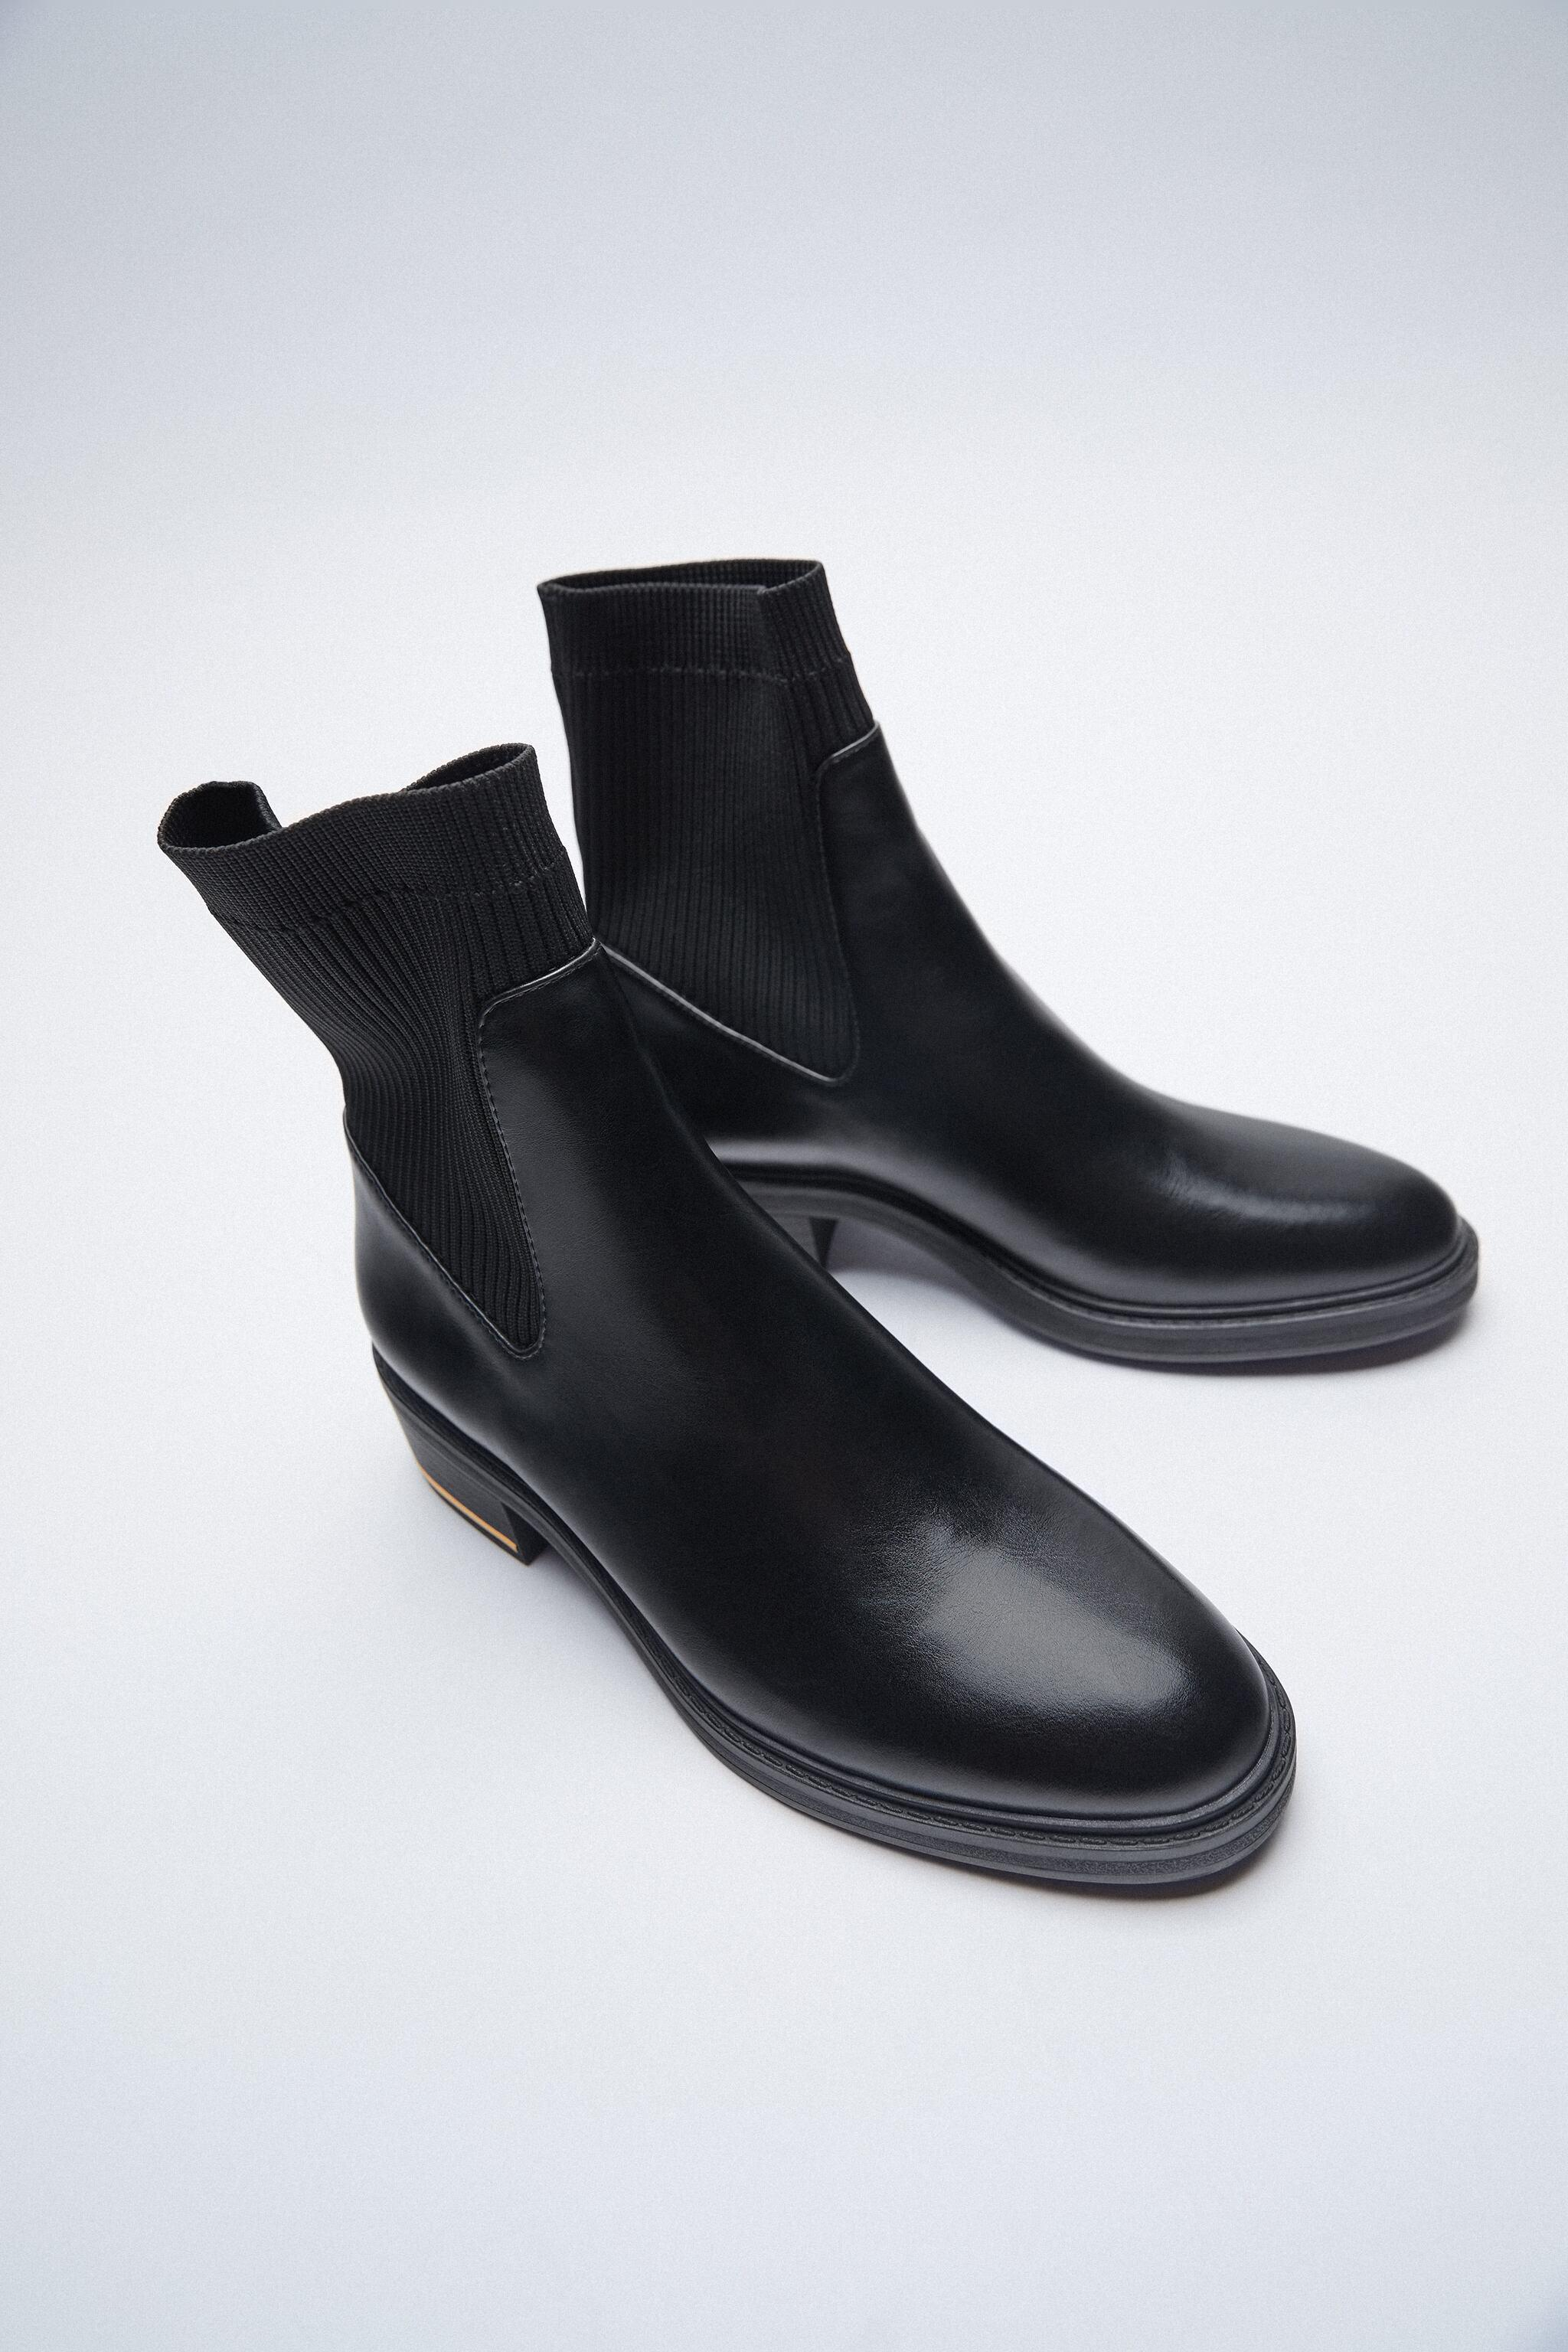 LOW HEELED SOCK-STYLE ANKLE BOOTS 2